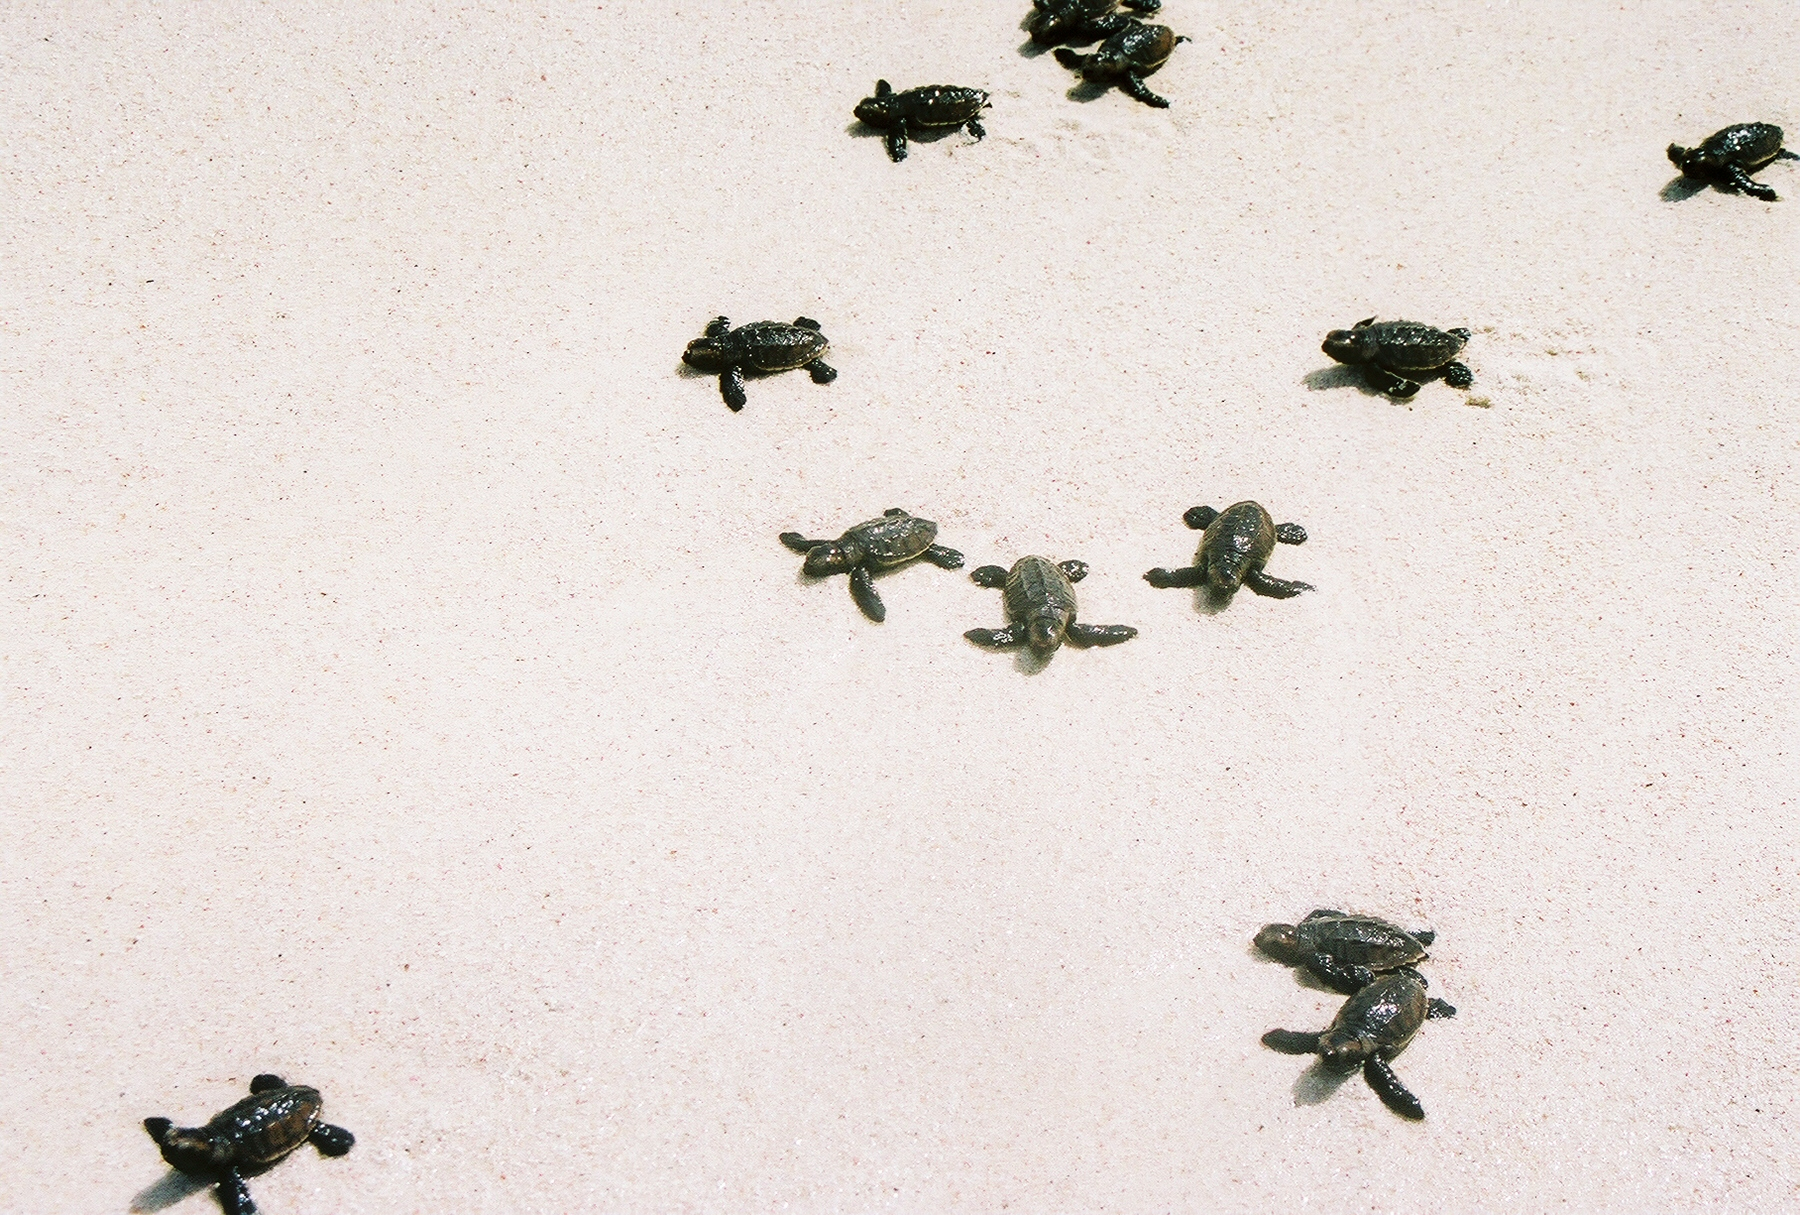 The small turtles in their race towards the sea. Photo: Pamy Rojas